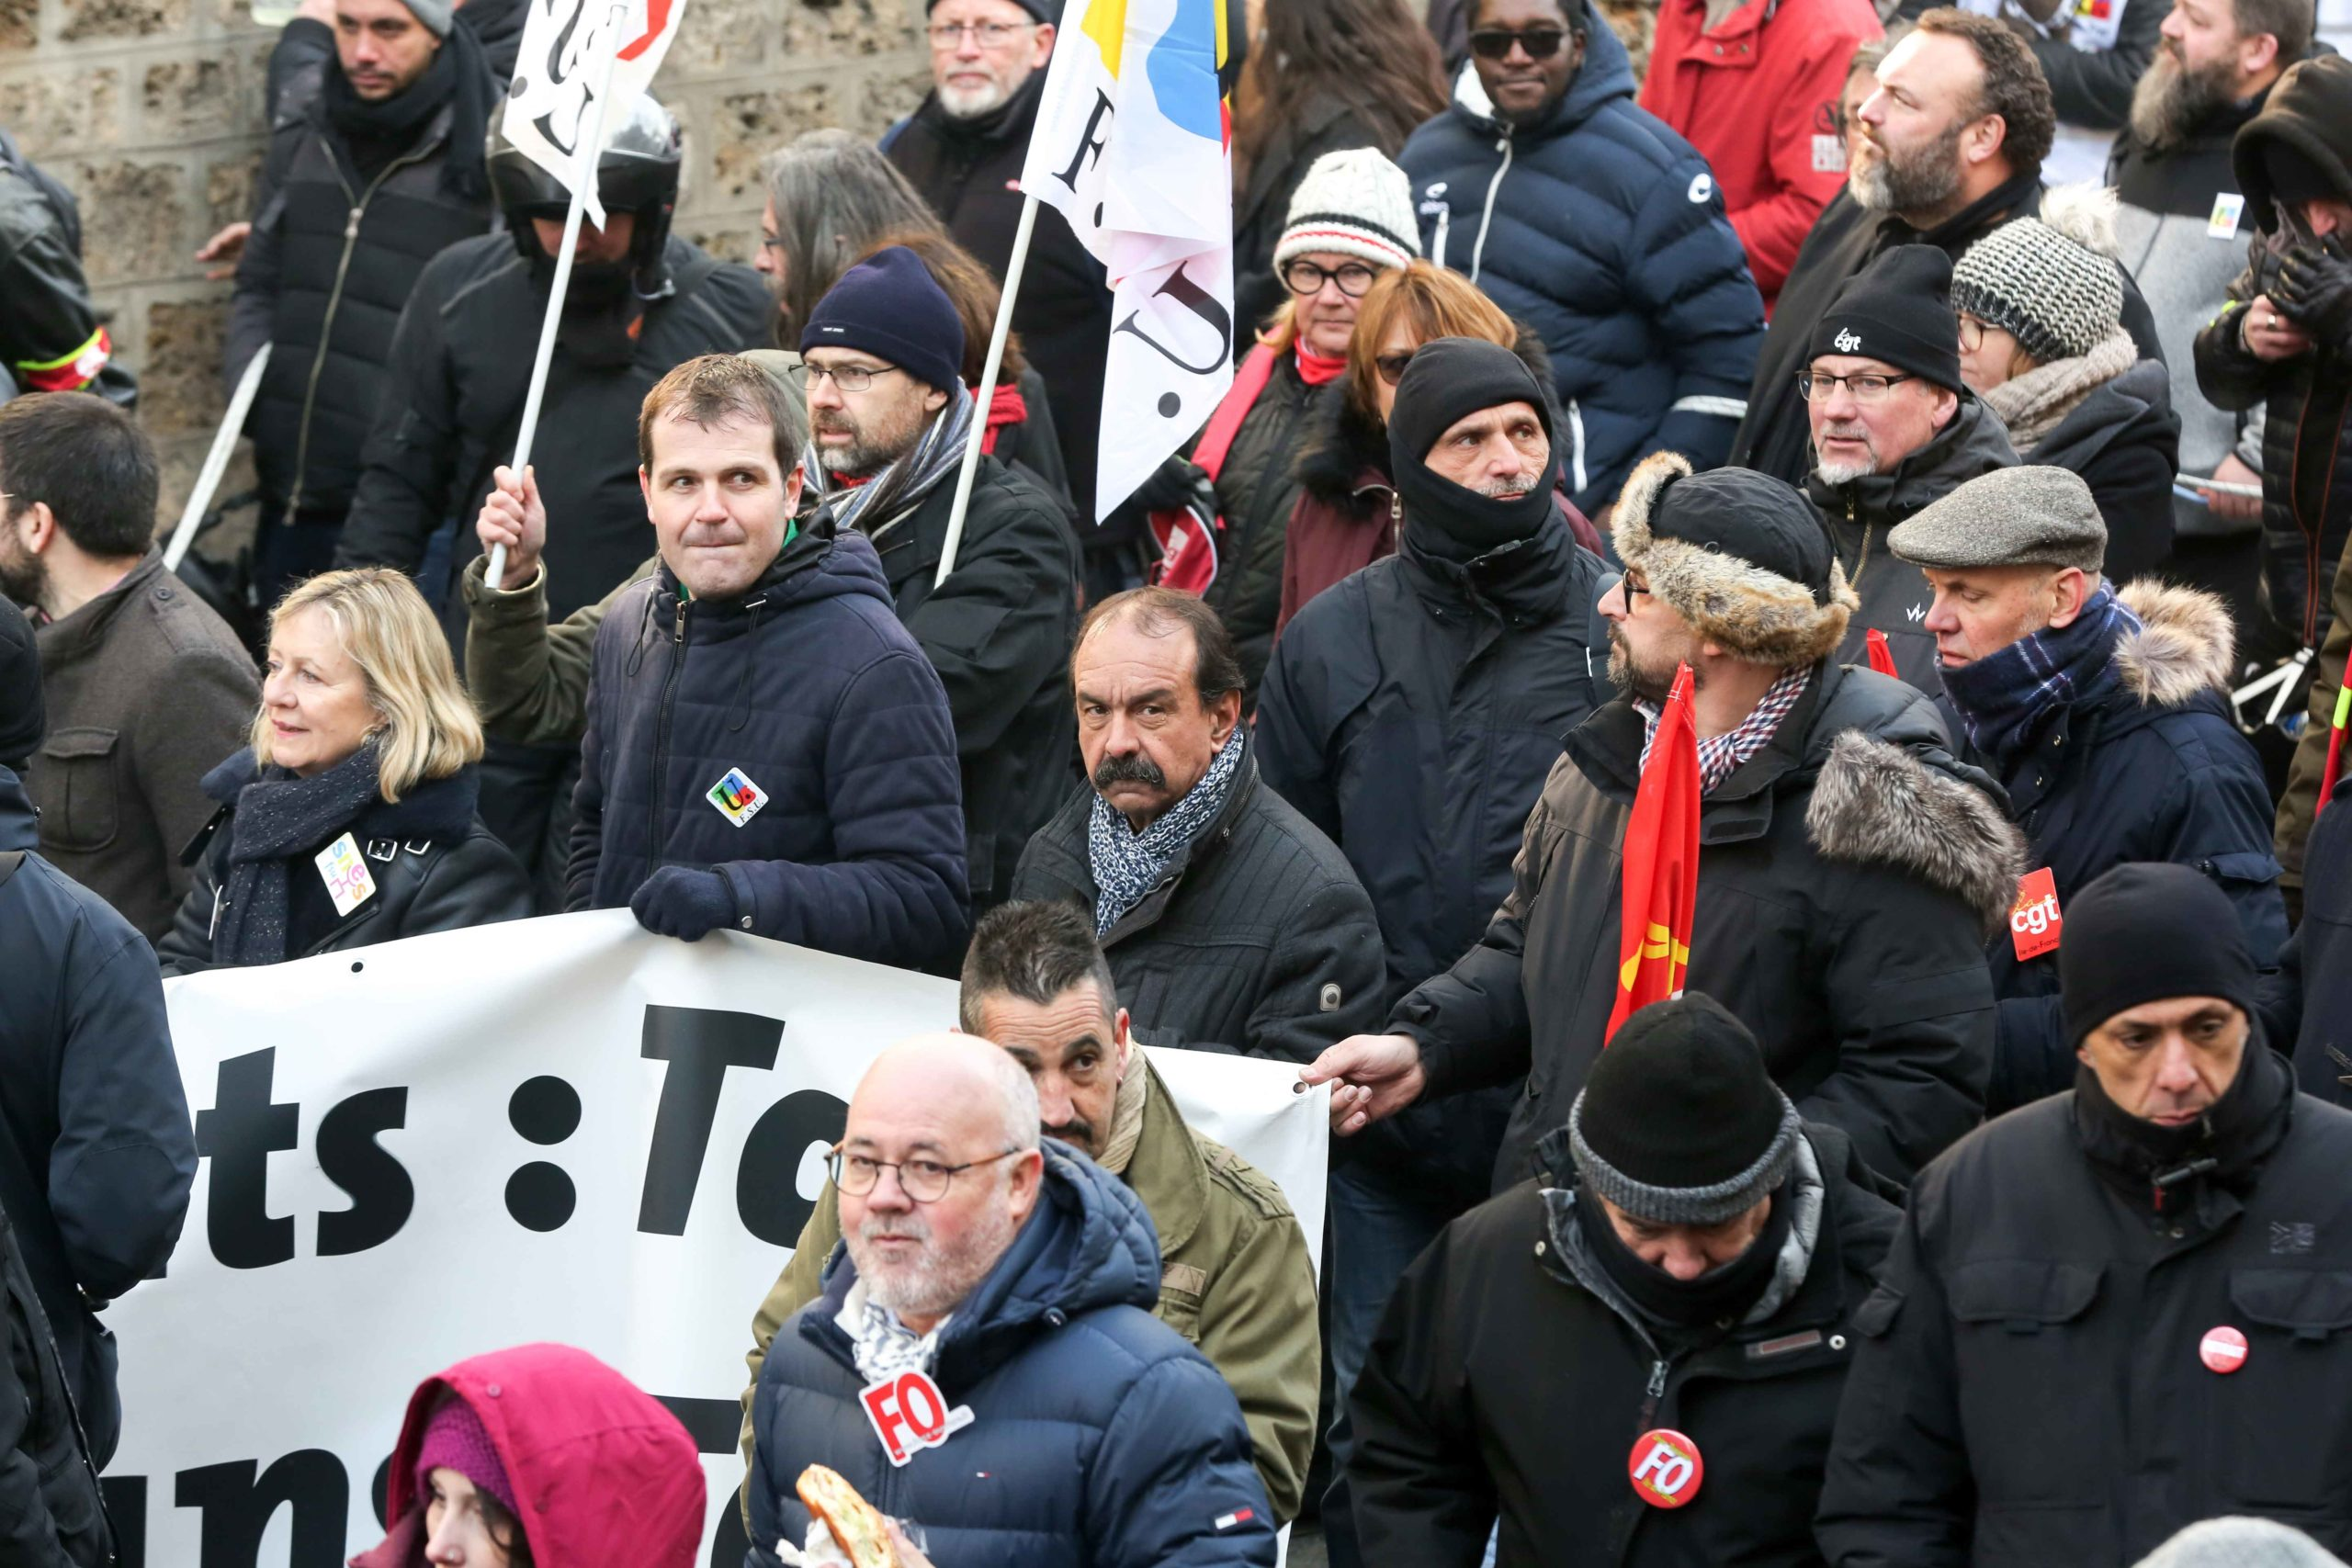 CGT union leader Philippe Martinez (C) takes part in a demonstration in Paris on January 24, 2020 against the government pensions reform, which will be officially unveiled after weeks of strikes by unions warning that millions of people will have to work l